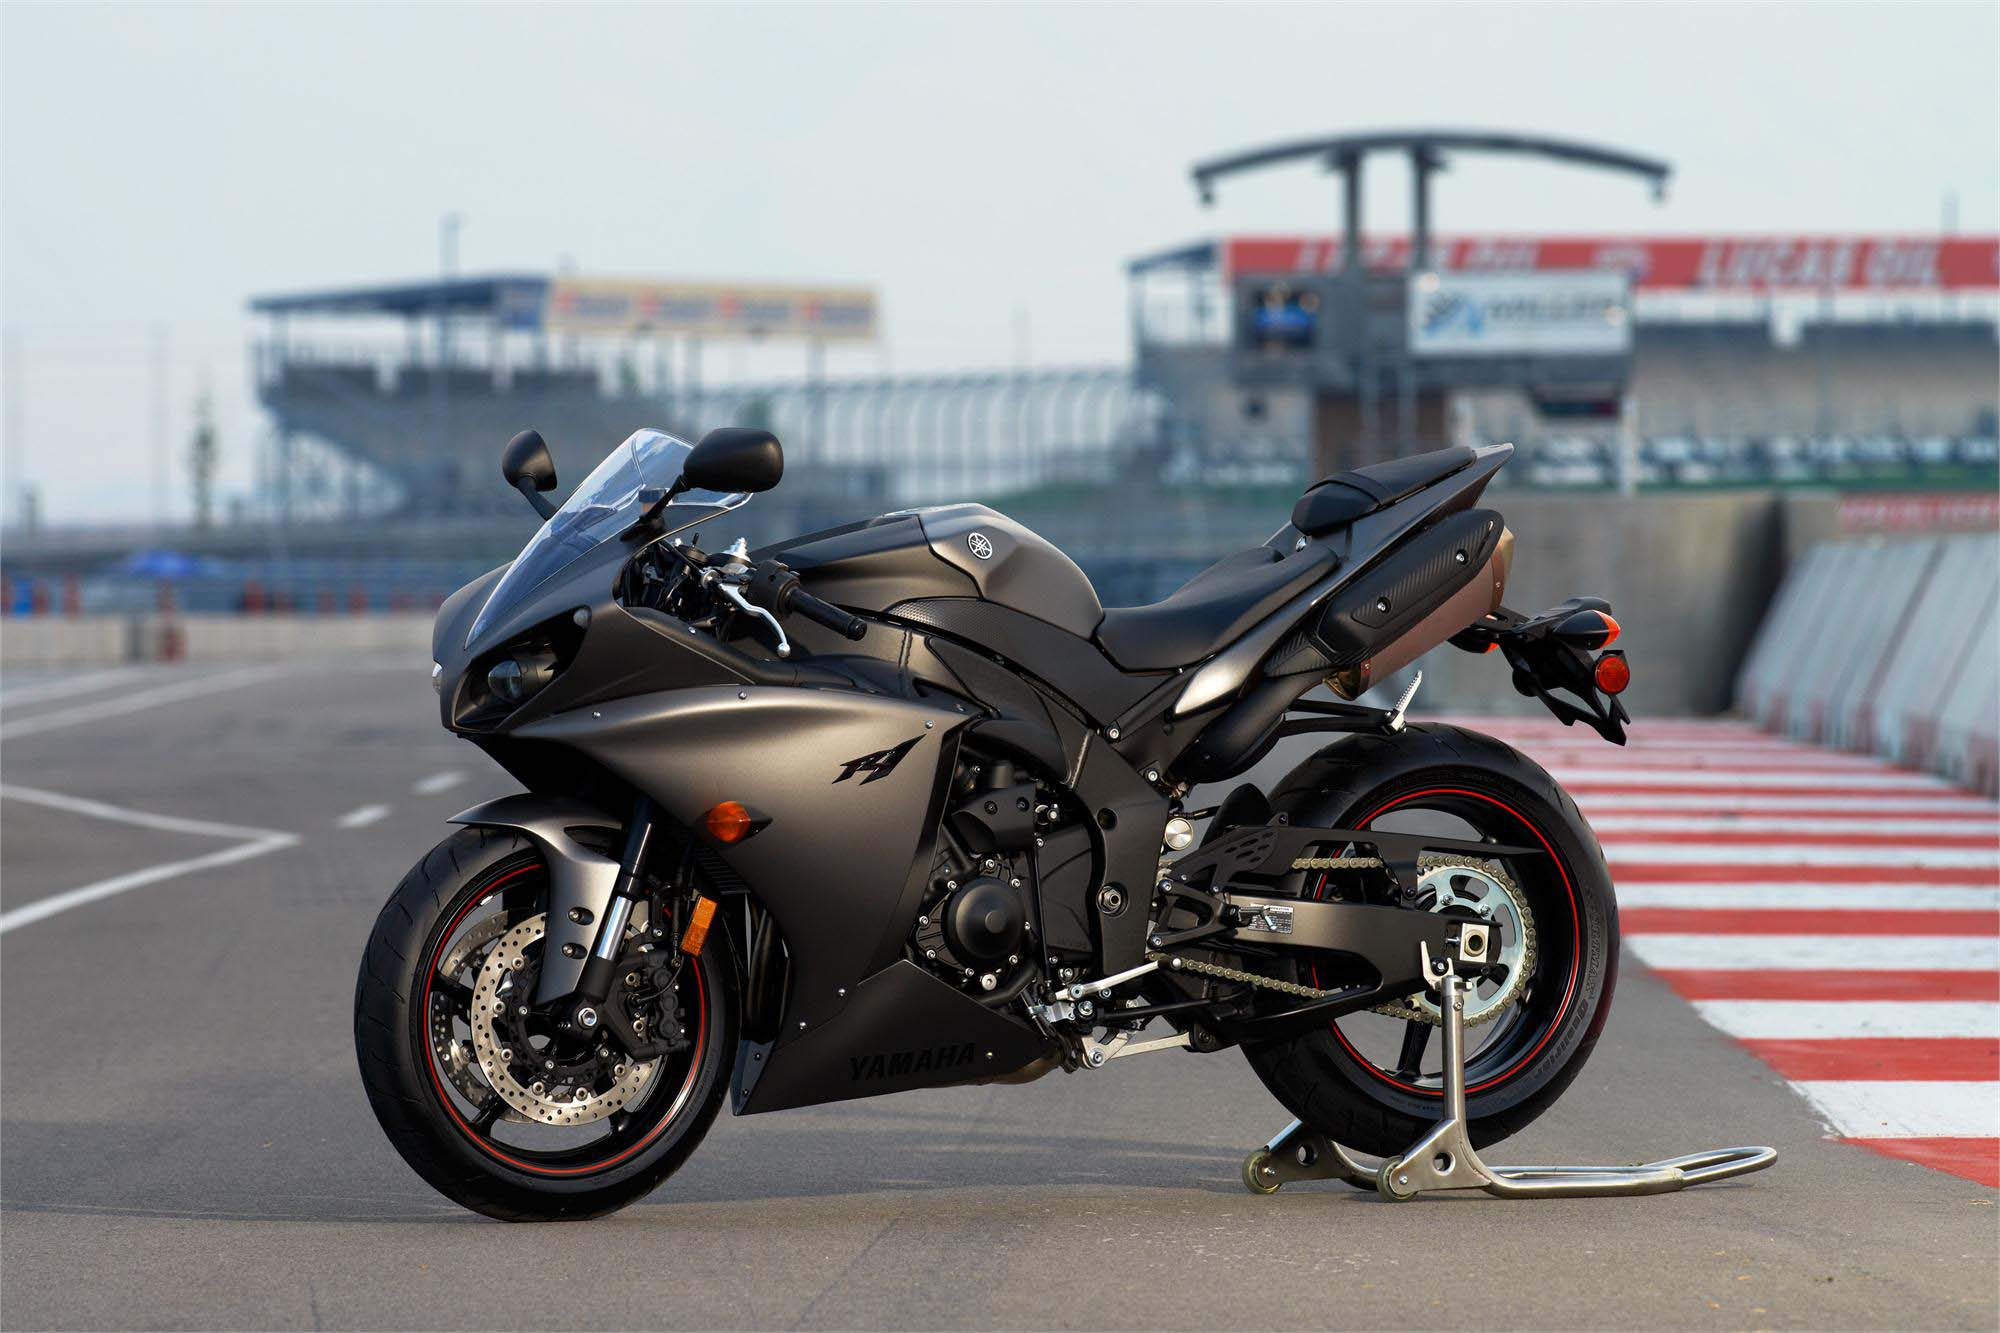 new colors only for the 2013 yamaha yzfr1 asphalt amp rubber